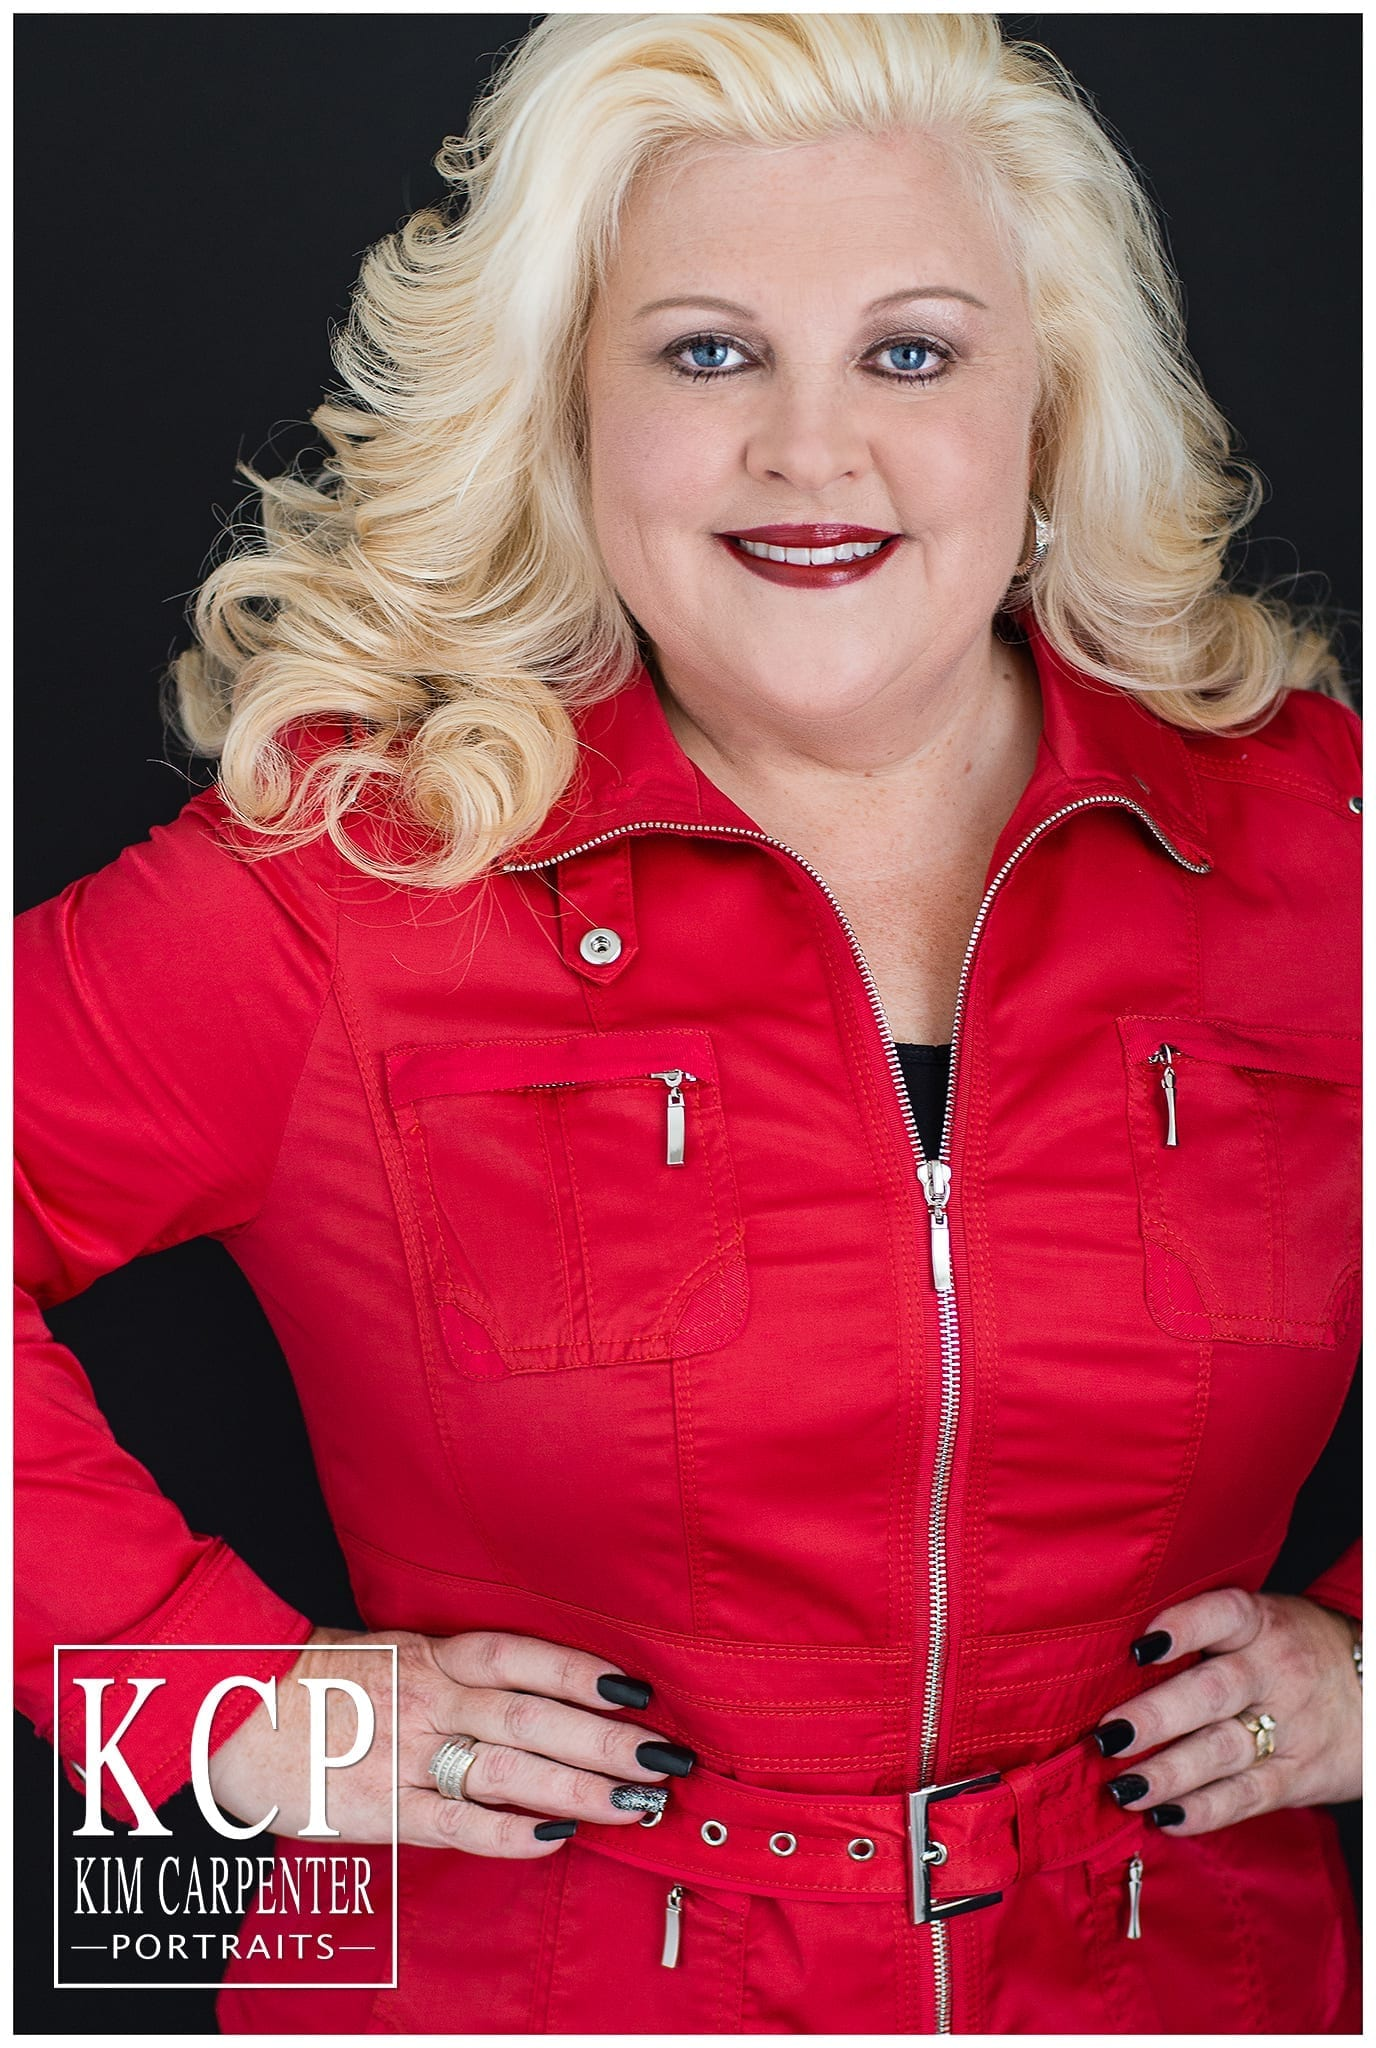 A close photograph of a woman wearing a bright red jacket with her hands on her hips. Lakeland Photographer, professional headshots